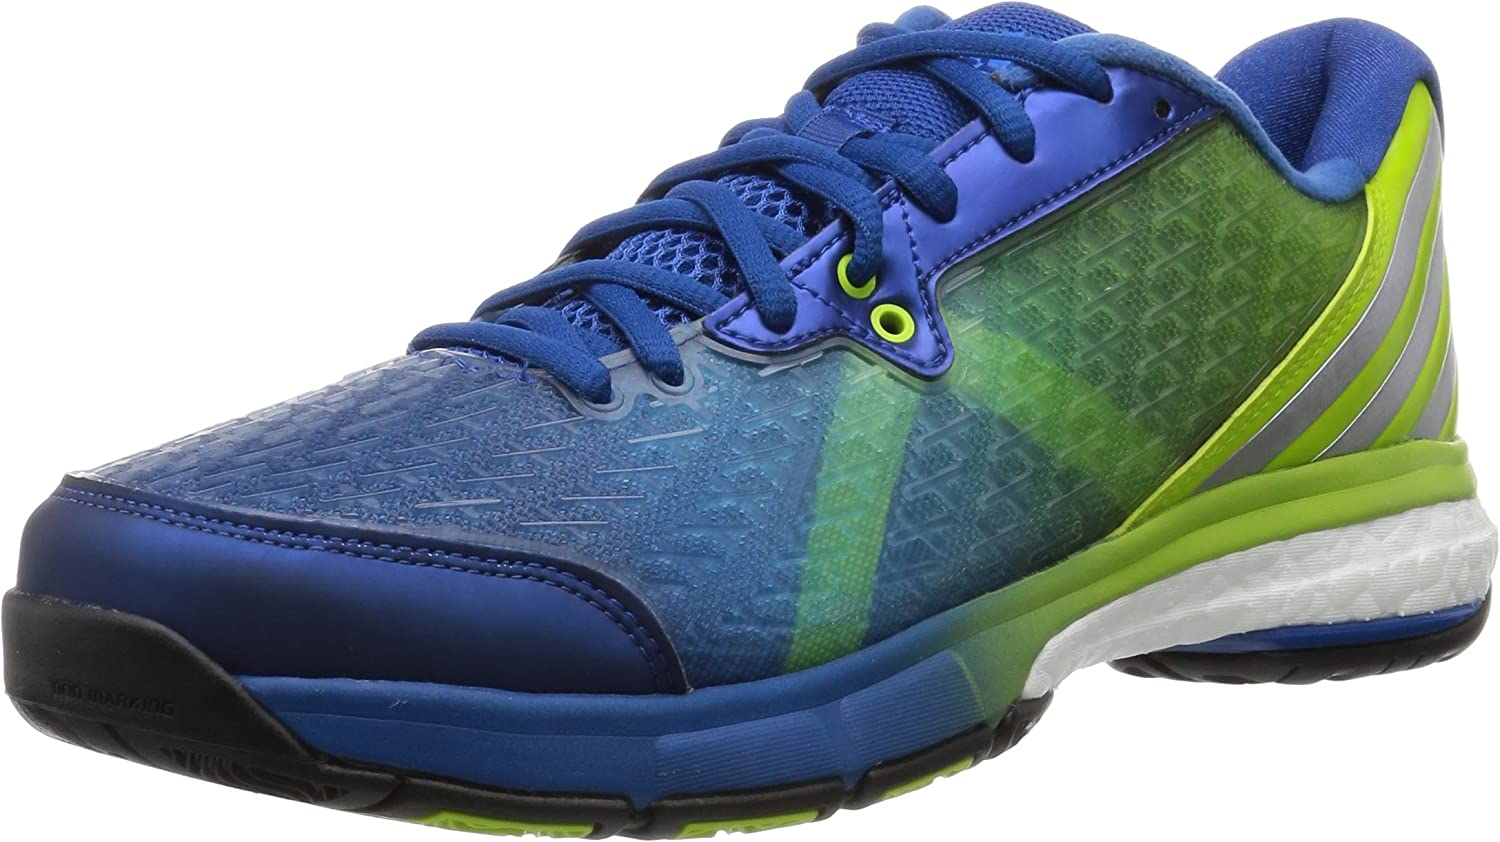 Adidas Energy Volley Boost 2.0 - eqtBlau msilve sesosl B0177LAL58  Exquisite (mittlere) Arbeit